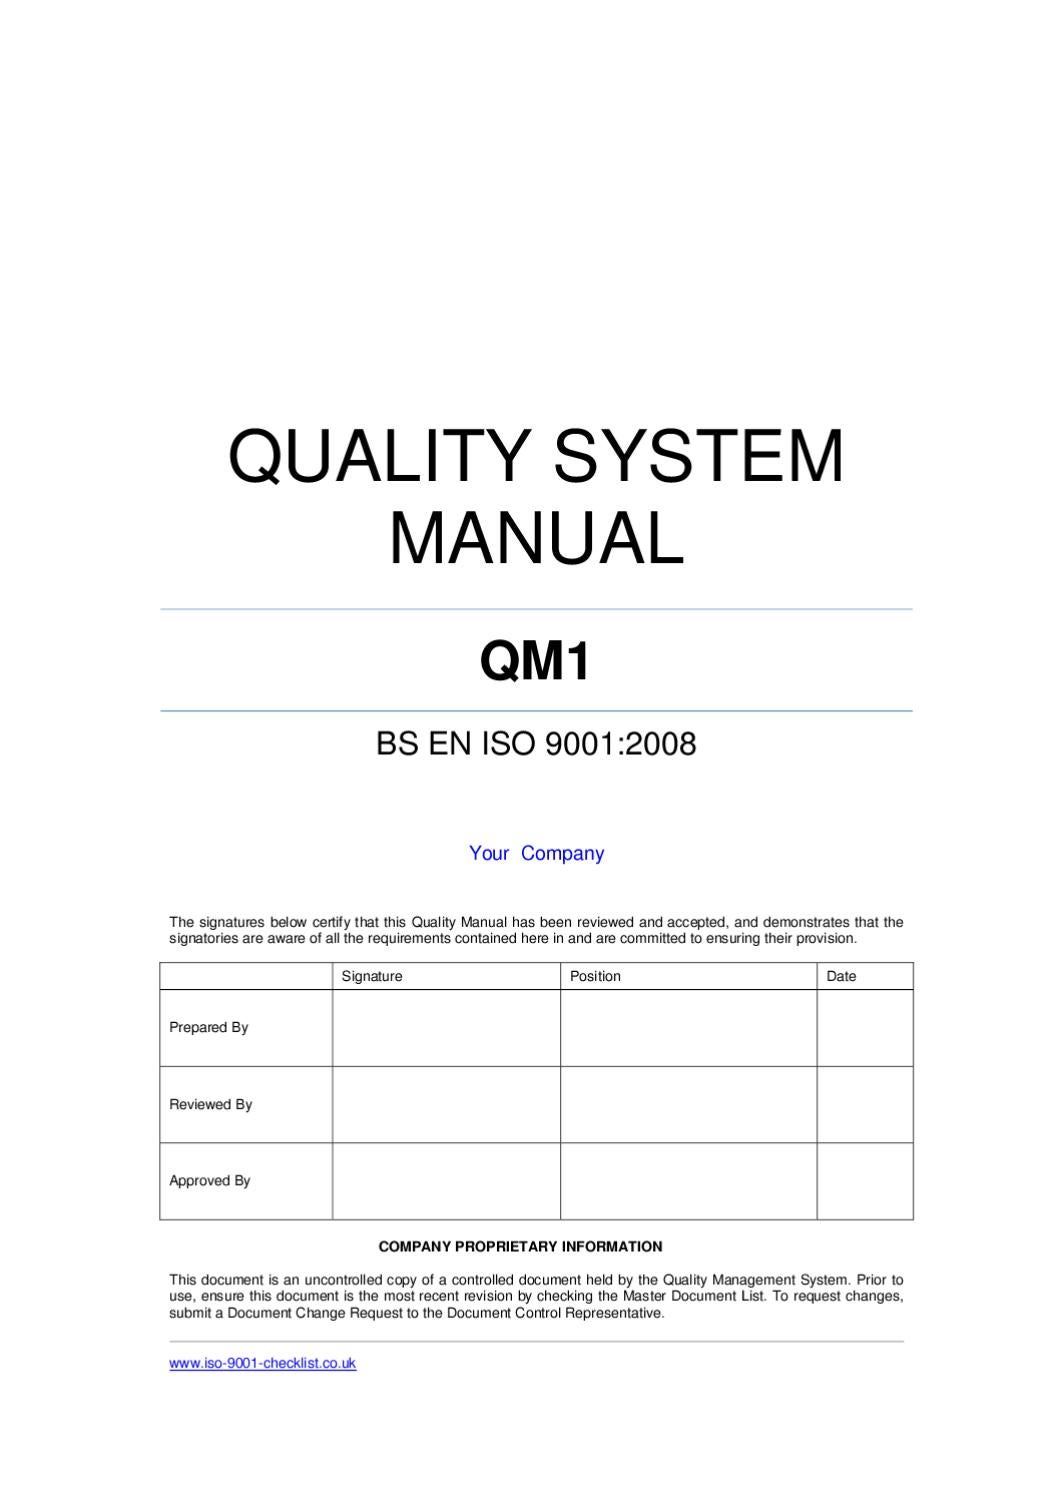 iso 9001 templates free download - quality manual template example by iso 9001 checklist issuu